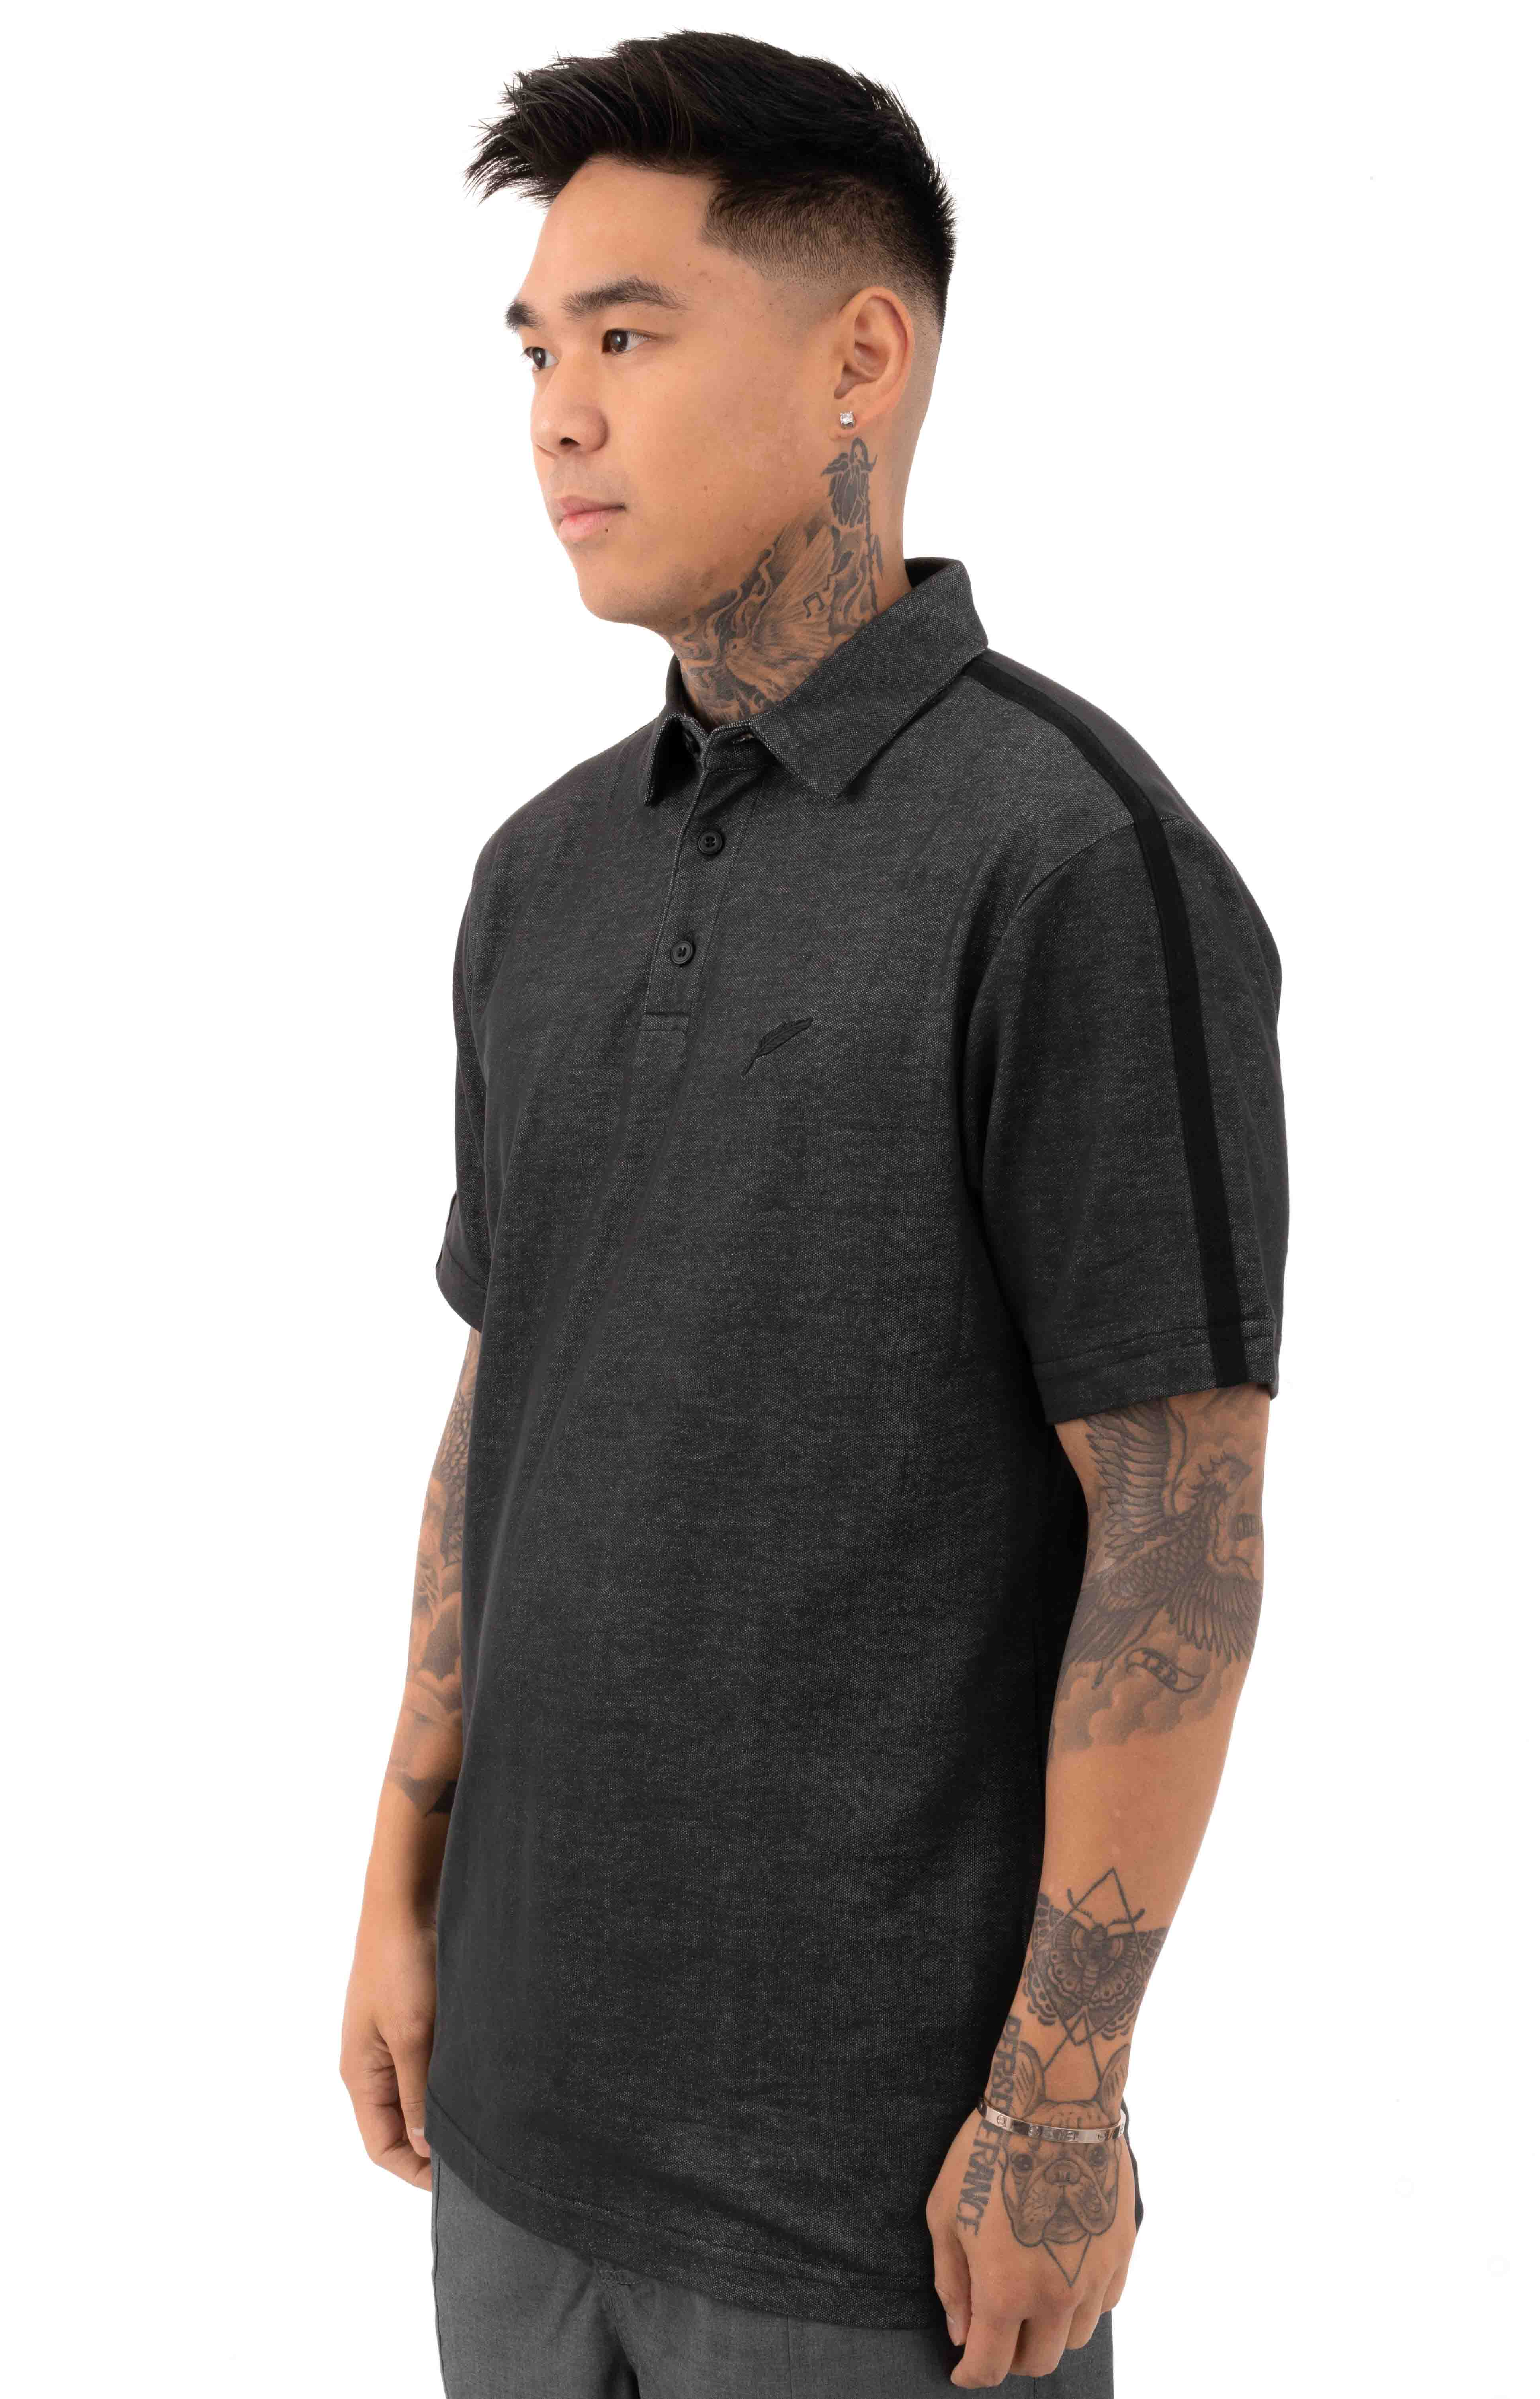 Index S/S Polo Shirt - Charcoal  2